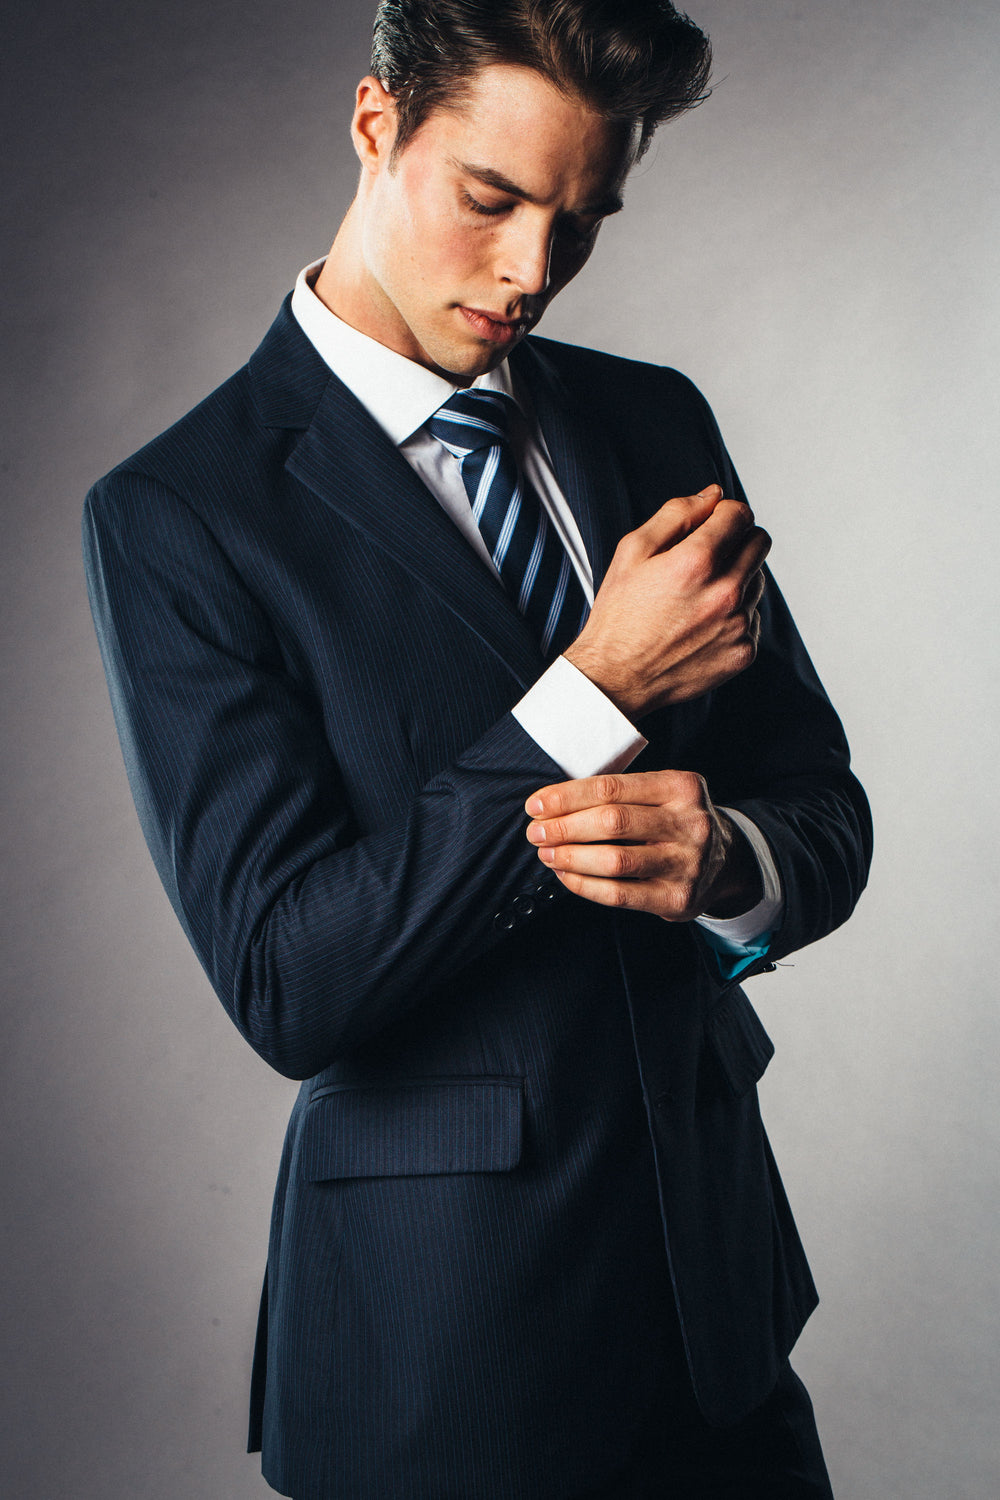 Navy blue custom suit for work